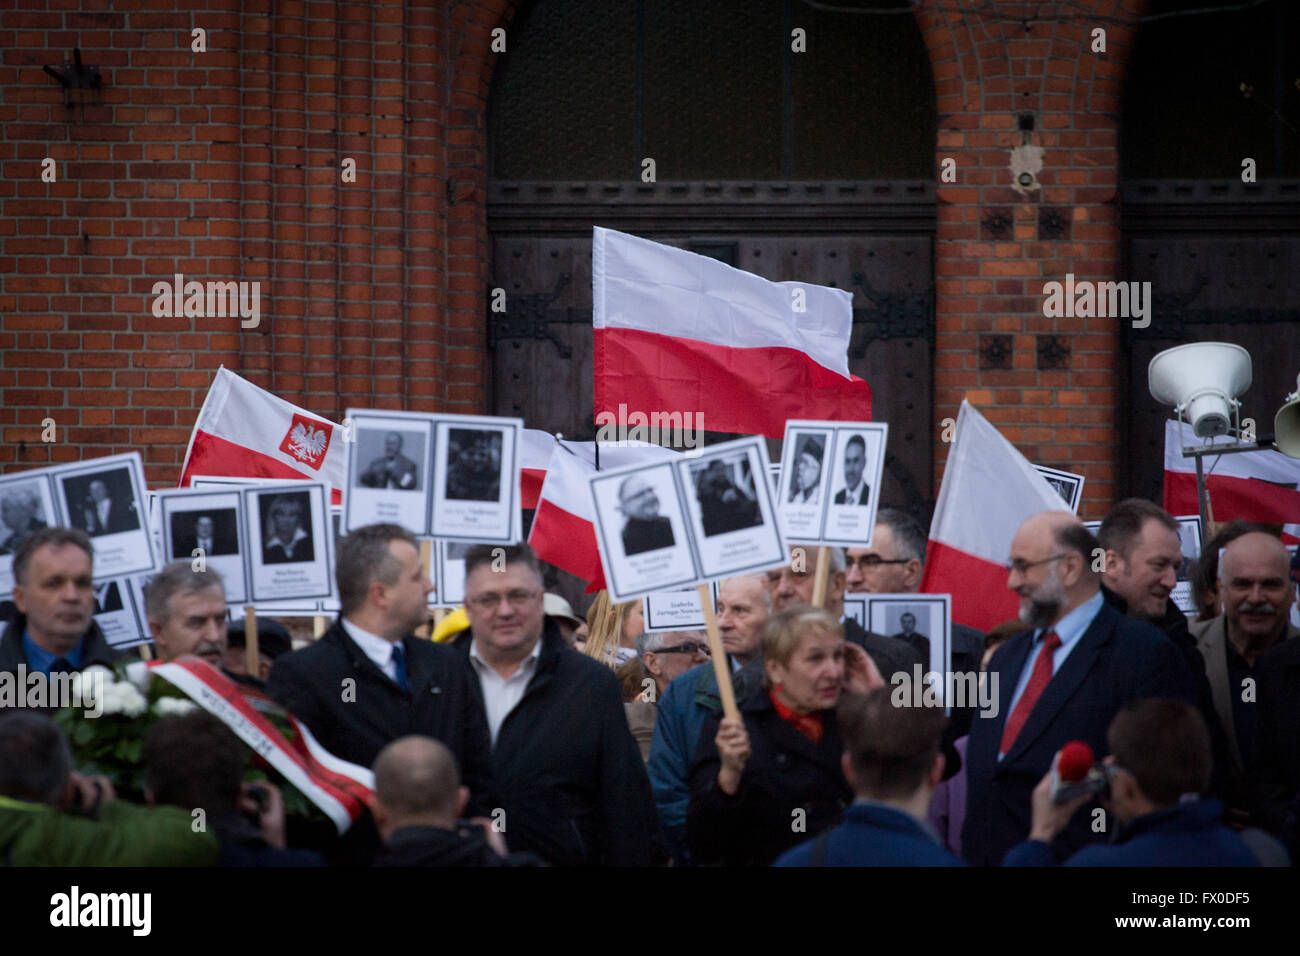 People are seen commemorating the crash of the government Tupolev aircraft in Smolensk, Russia which killed several - Stock Image